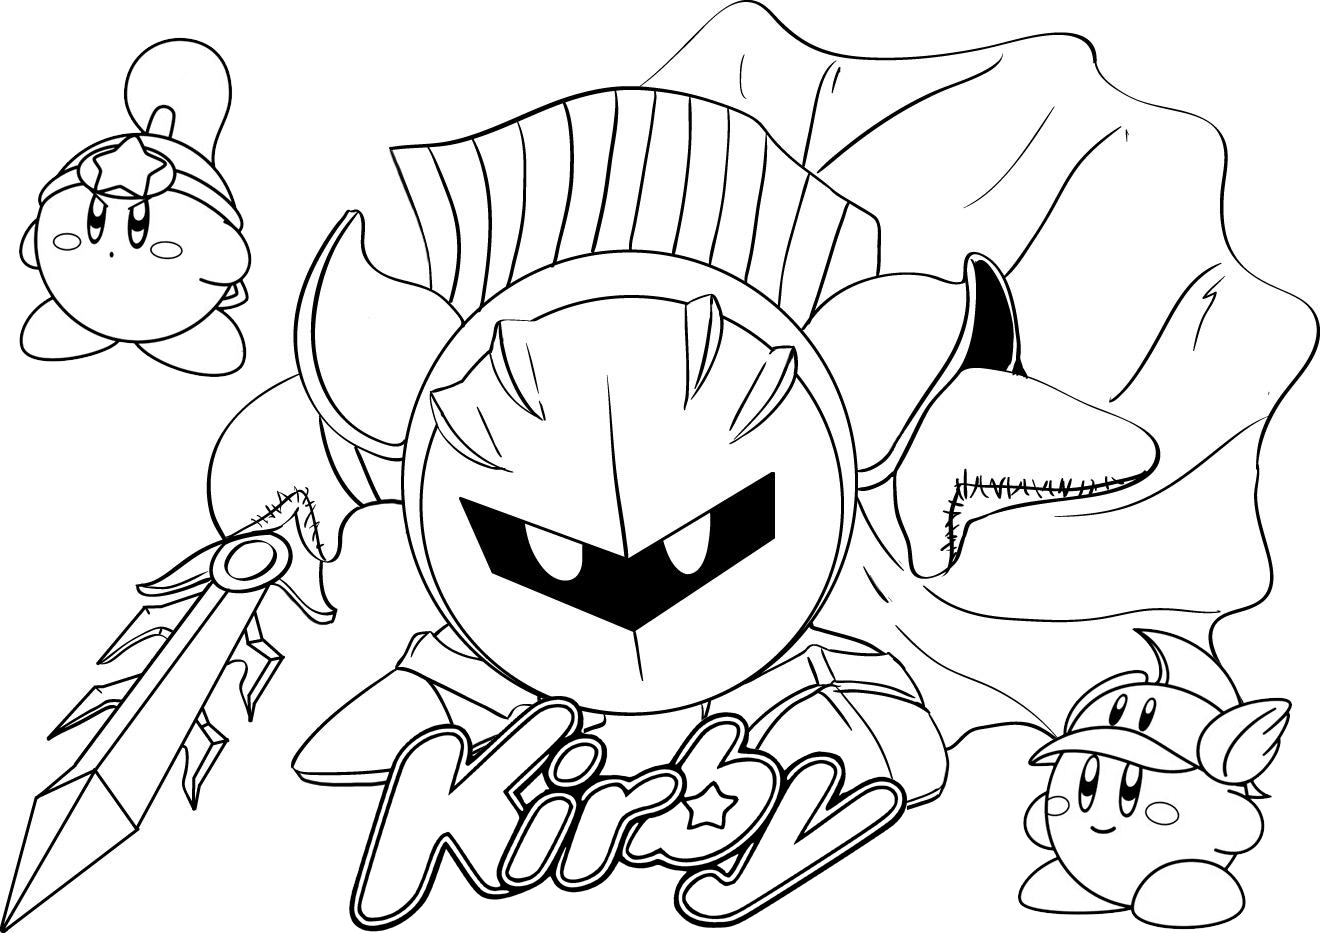 meta knight from kirby coloring page drawing